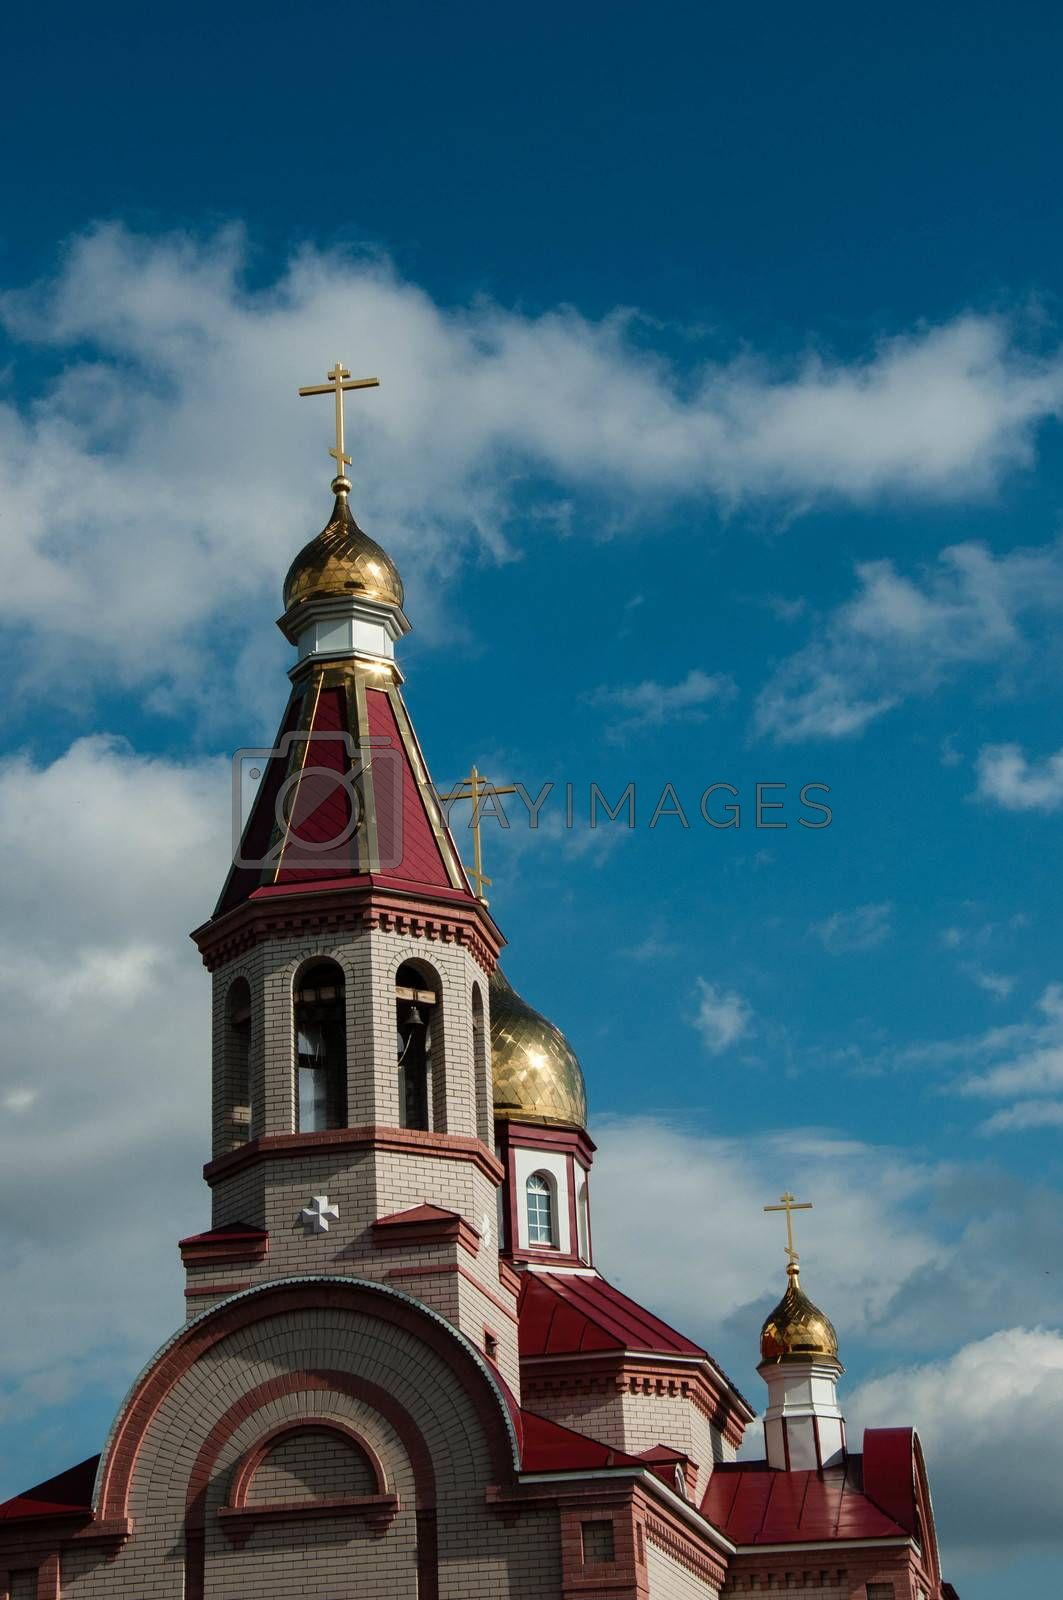 The dome of the Christian Church against the background of blue sky and white clouds